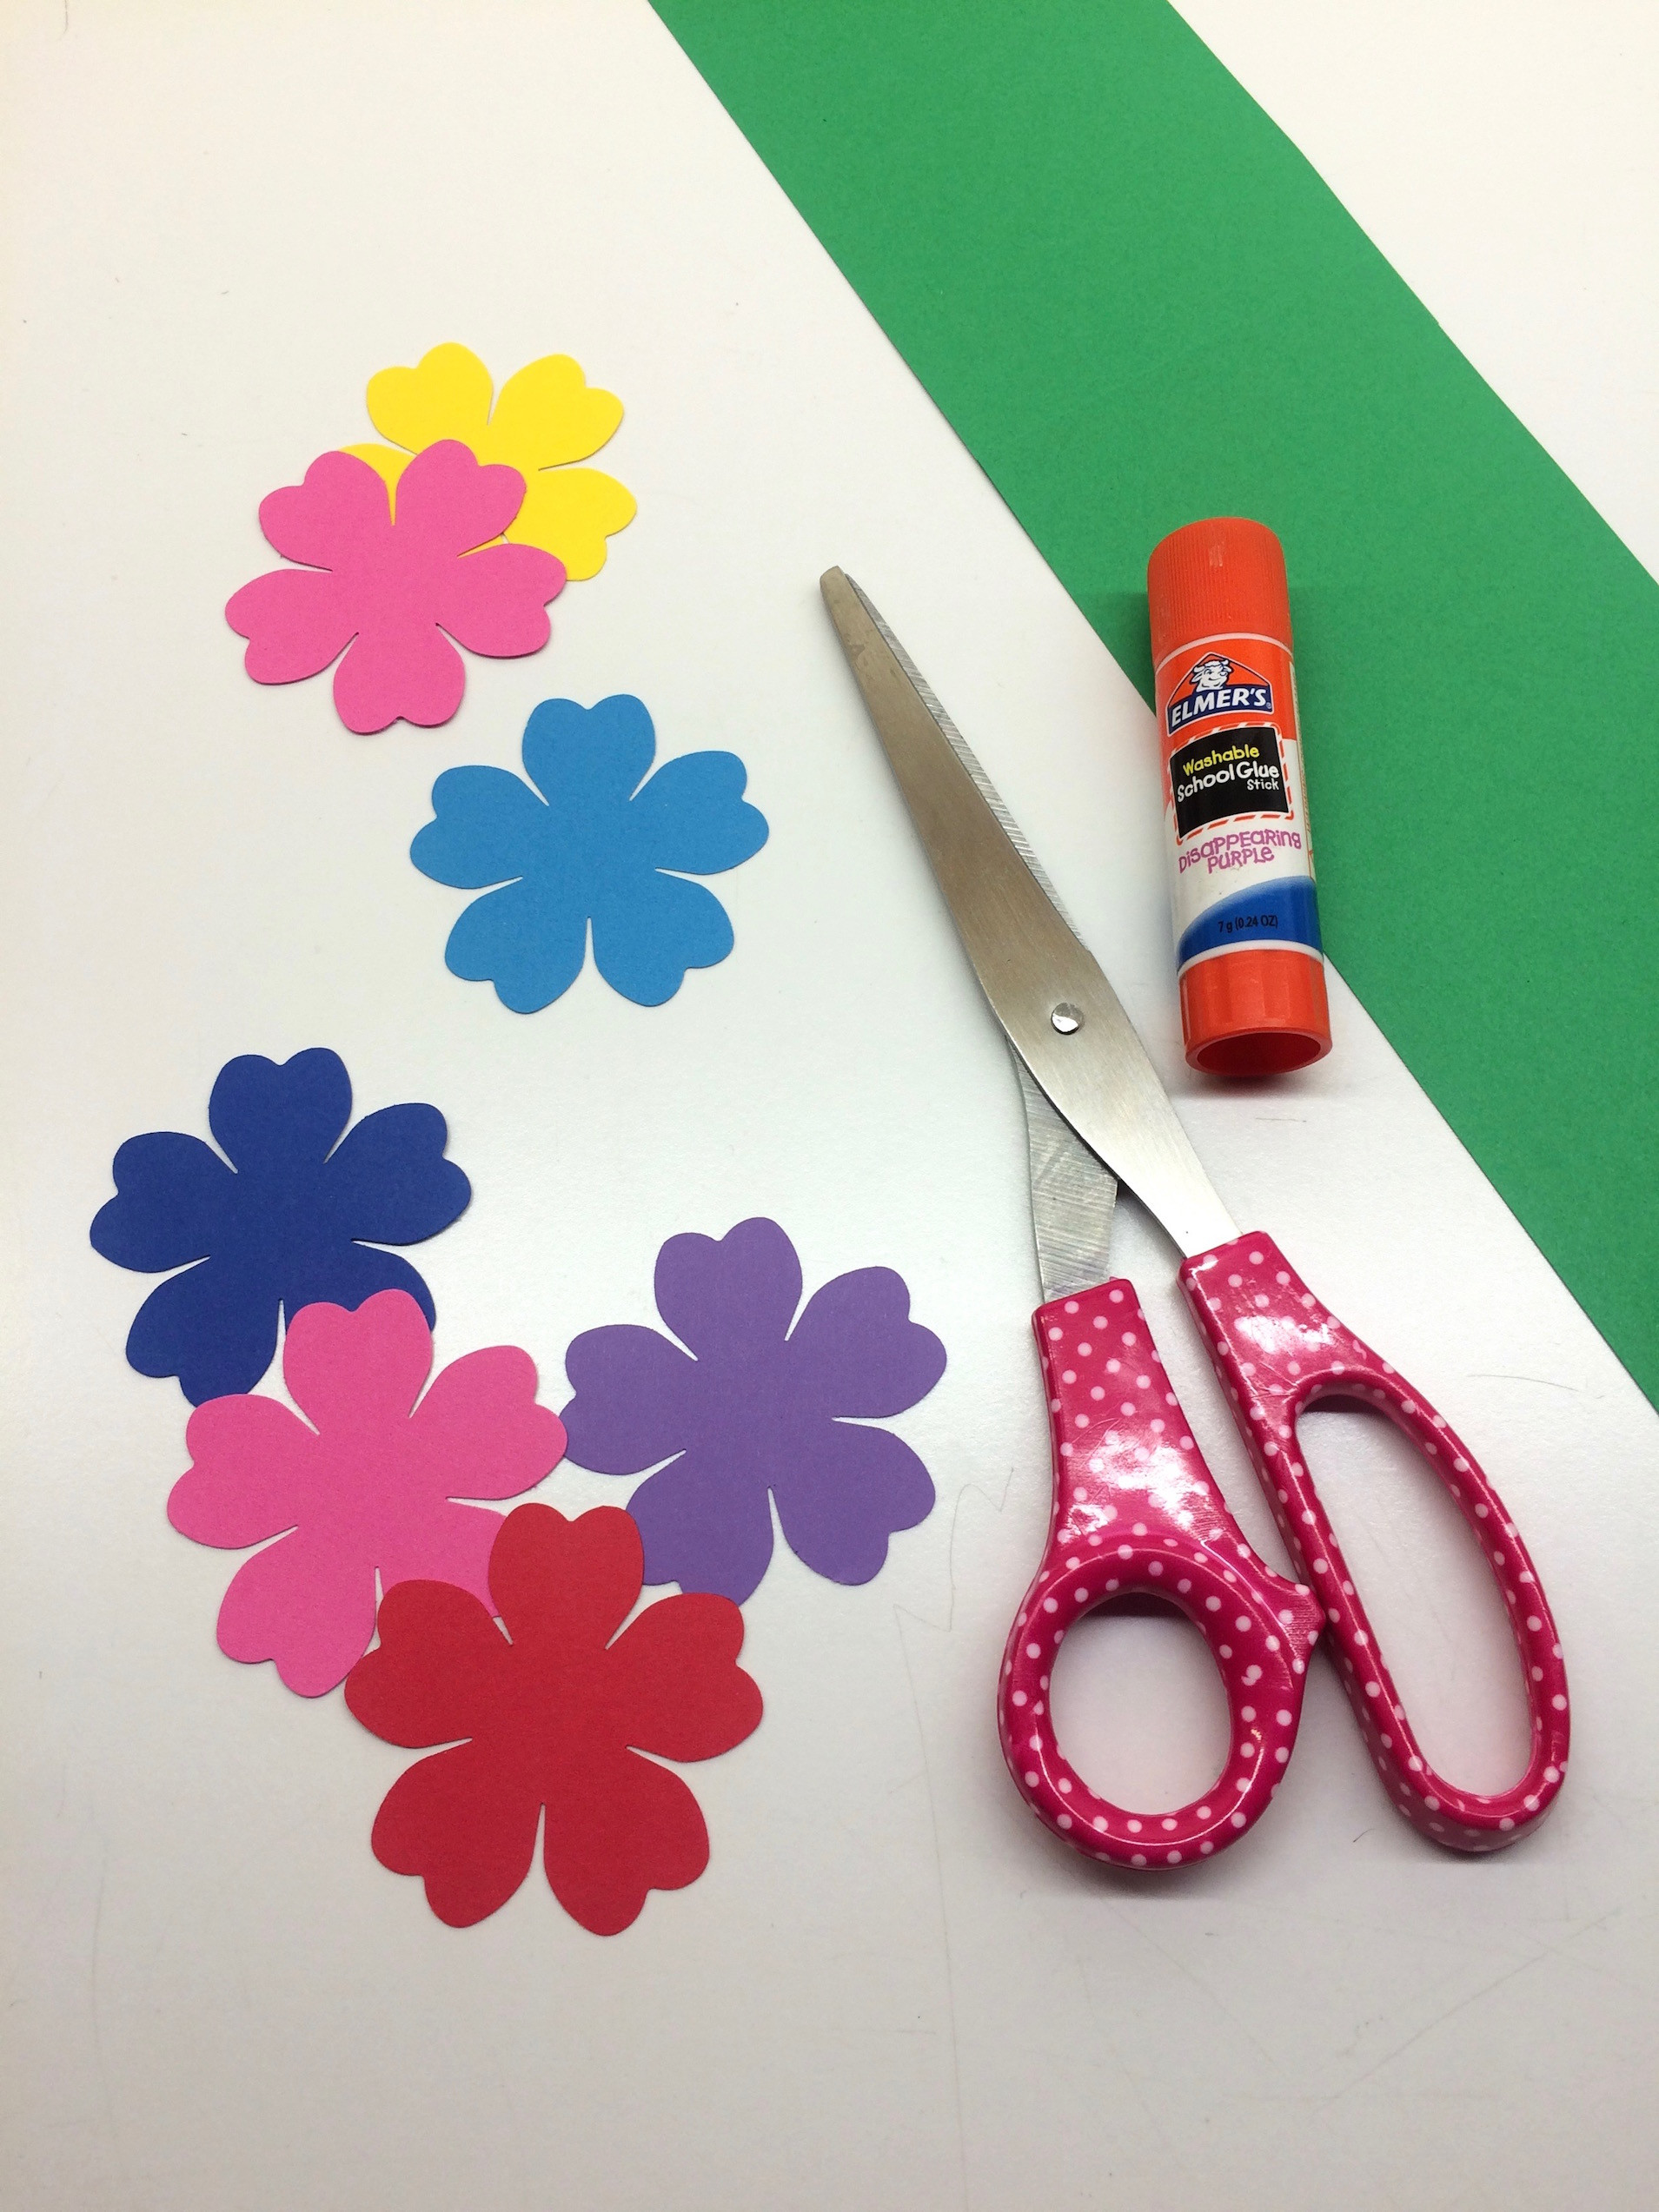 Best ideas about Crafting For Kids . Save or Pin Craft for Kids Hawaiian Lei & Grass Crown Now.